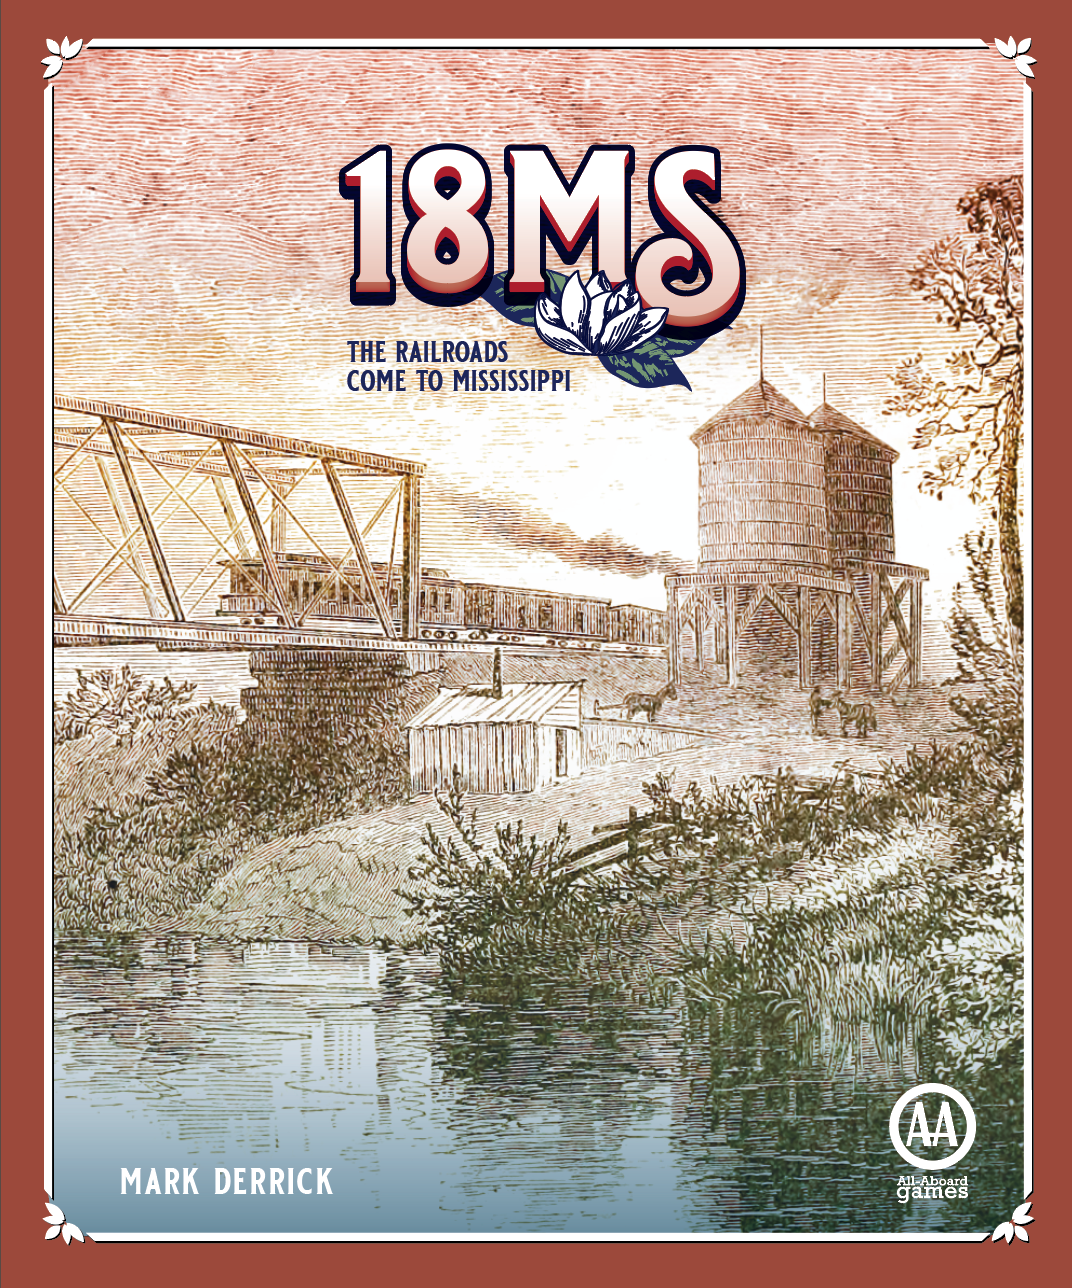 INTERNATIONAL - 18MS: The Railroads Come to Mississippi Preorder